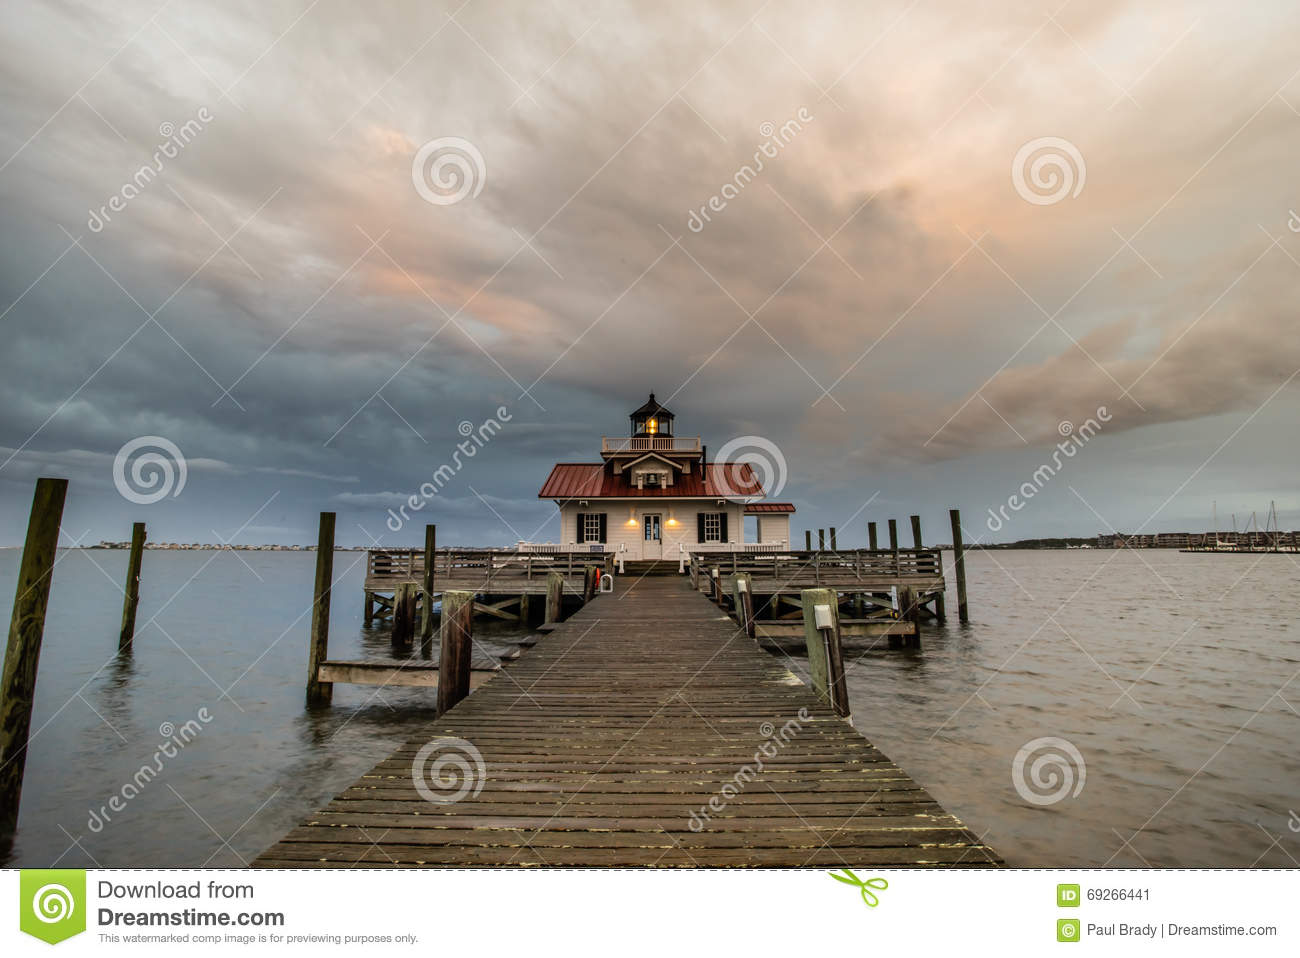 Roanoke Marshes Lighthouse in North Carolina